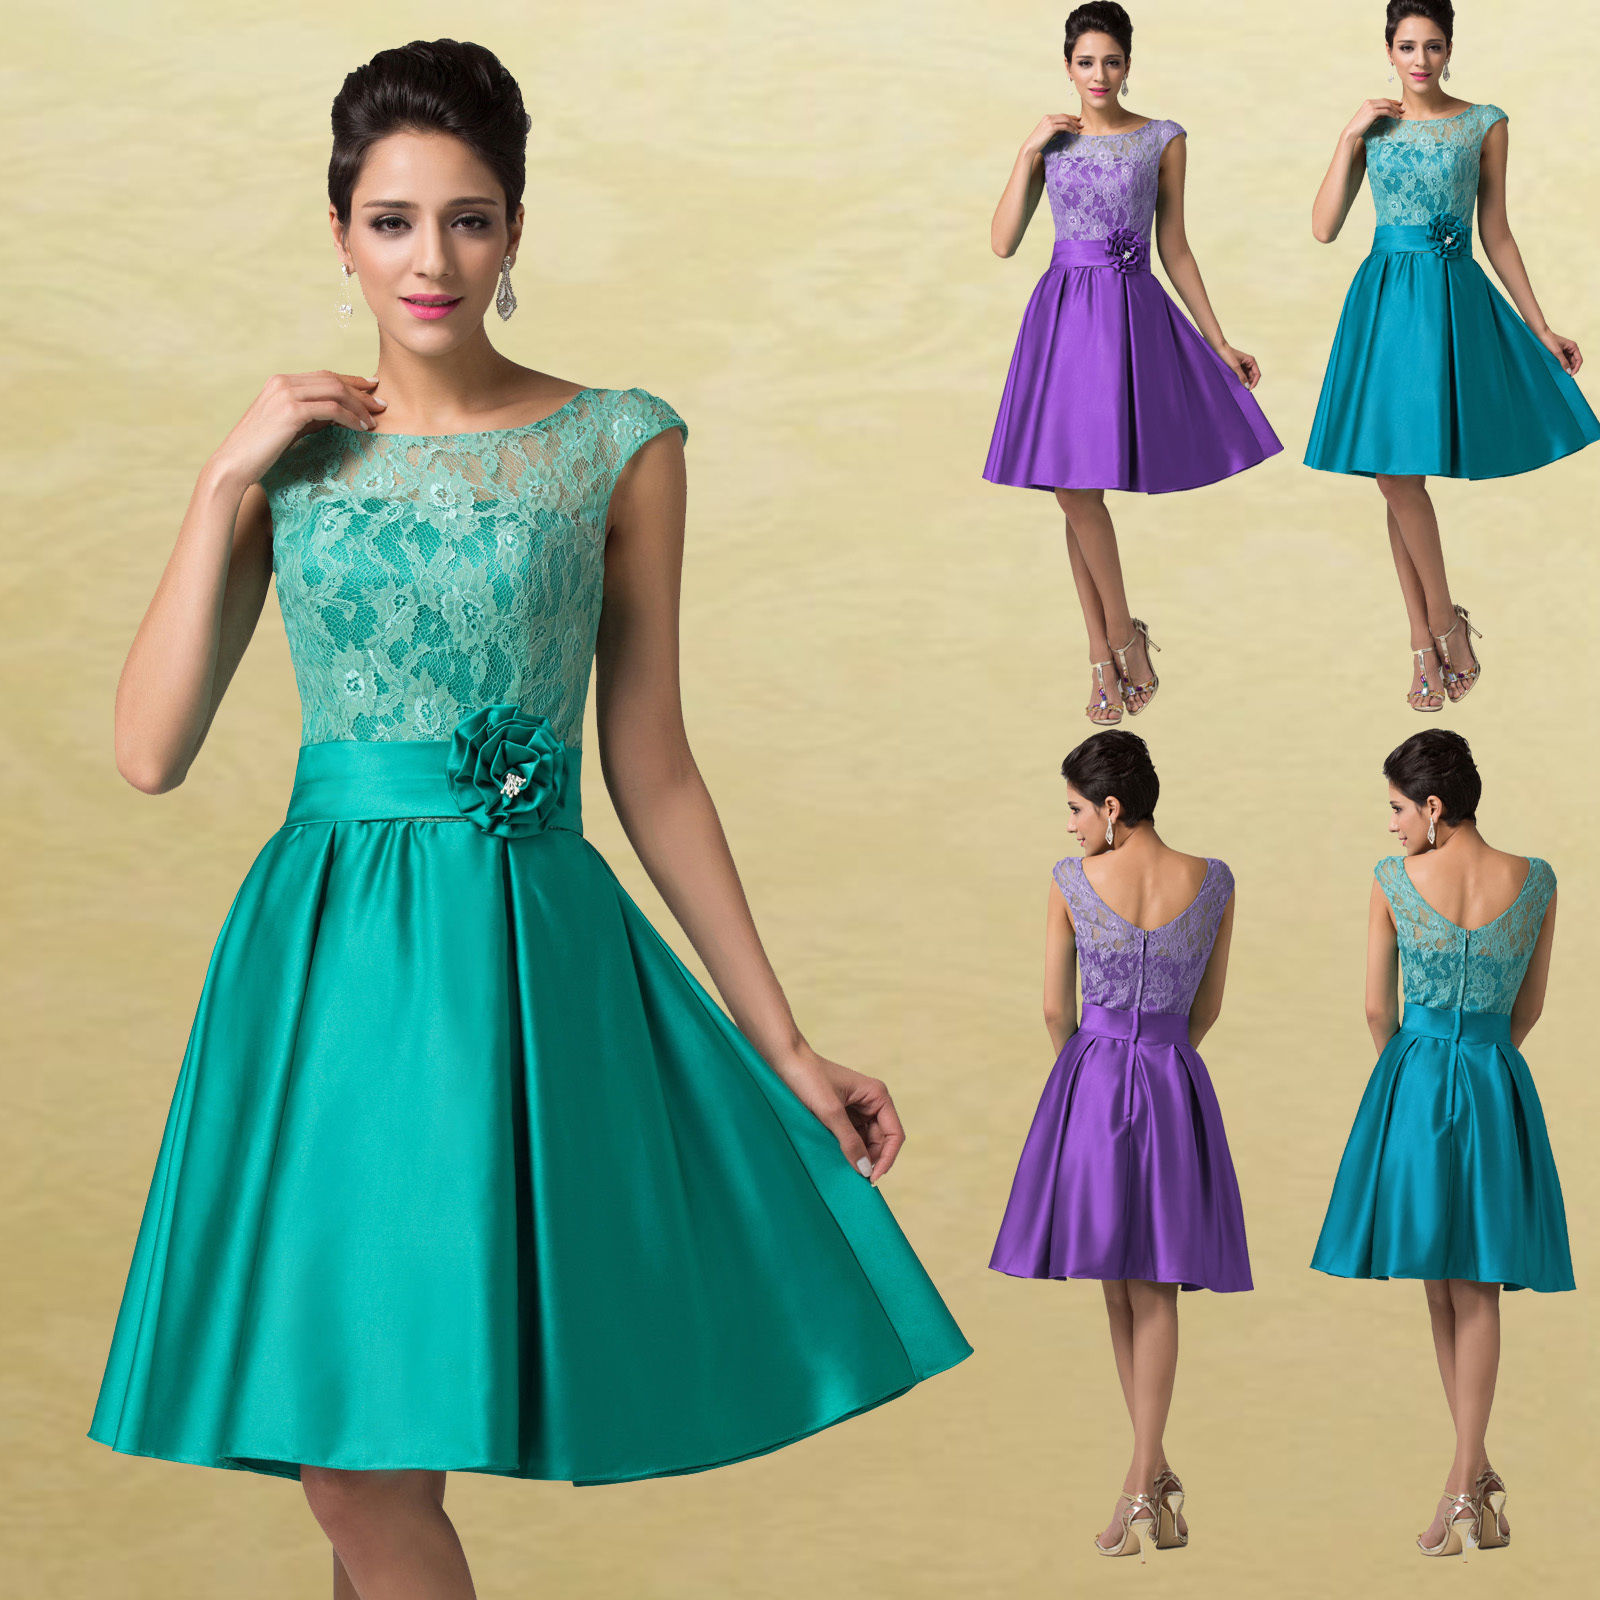 50s Bridesmaid Dresses – Fashion design images